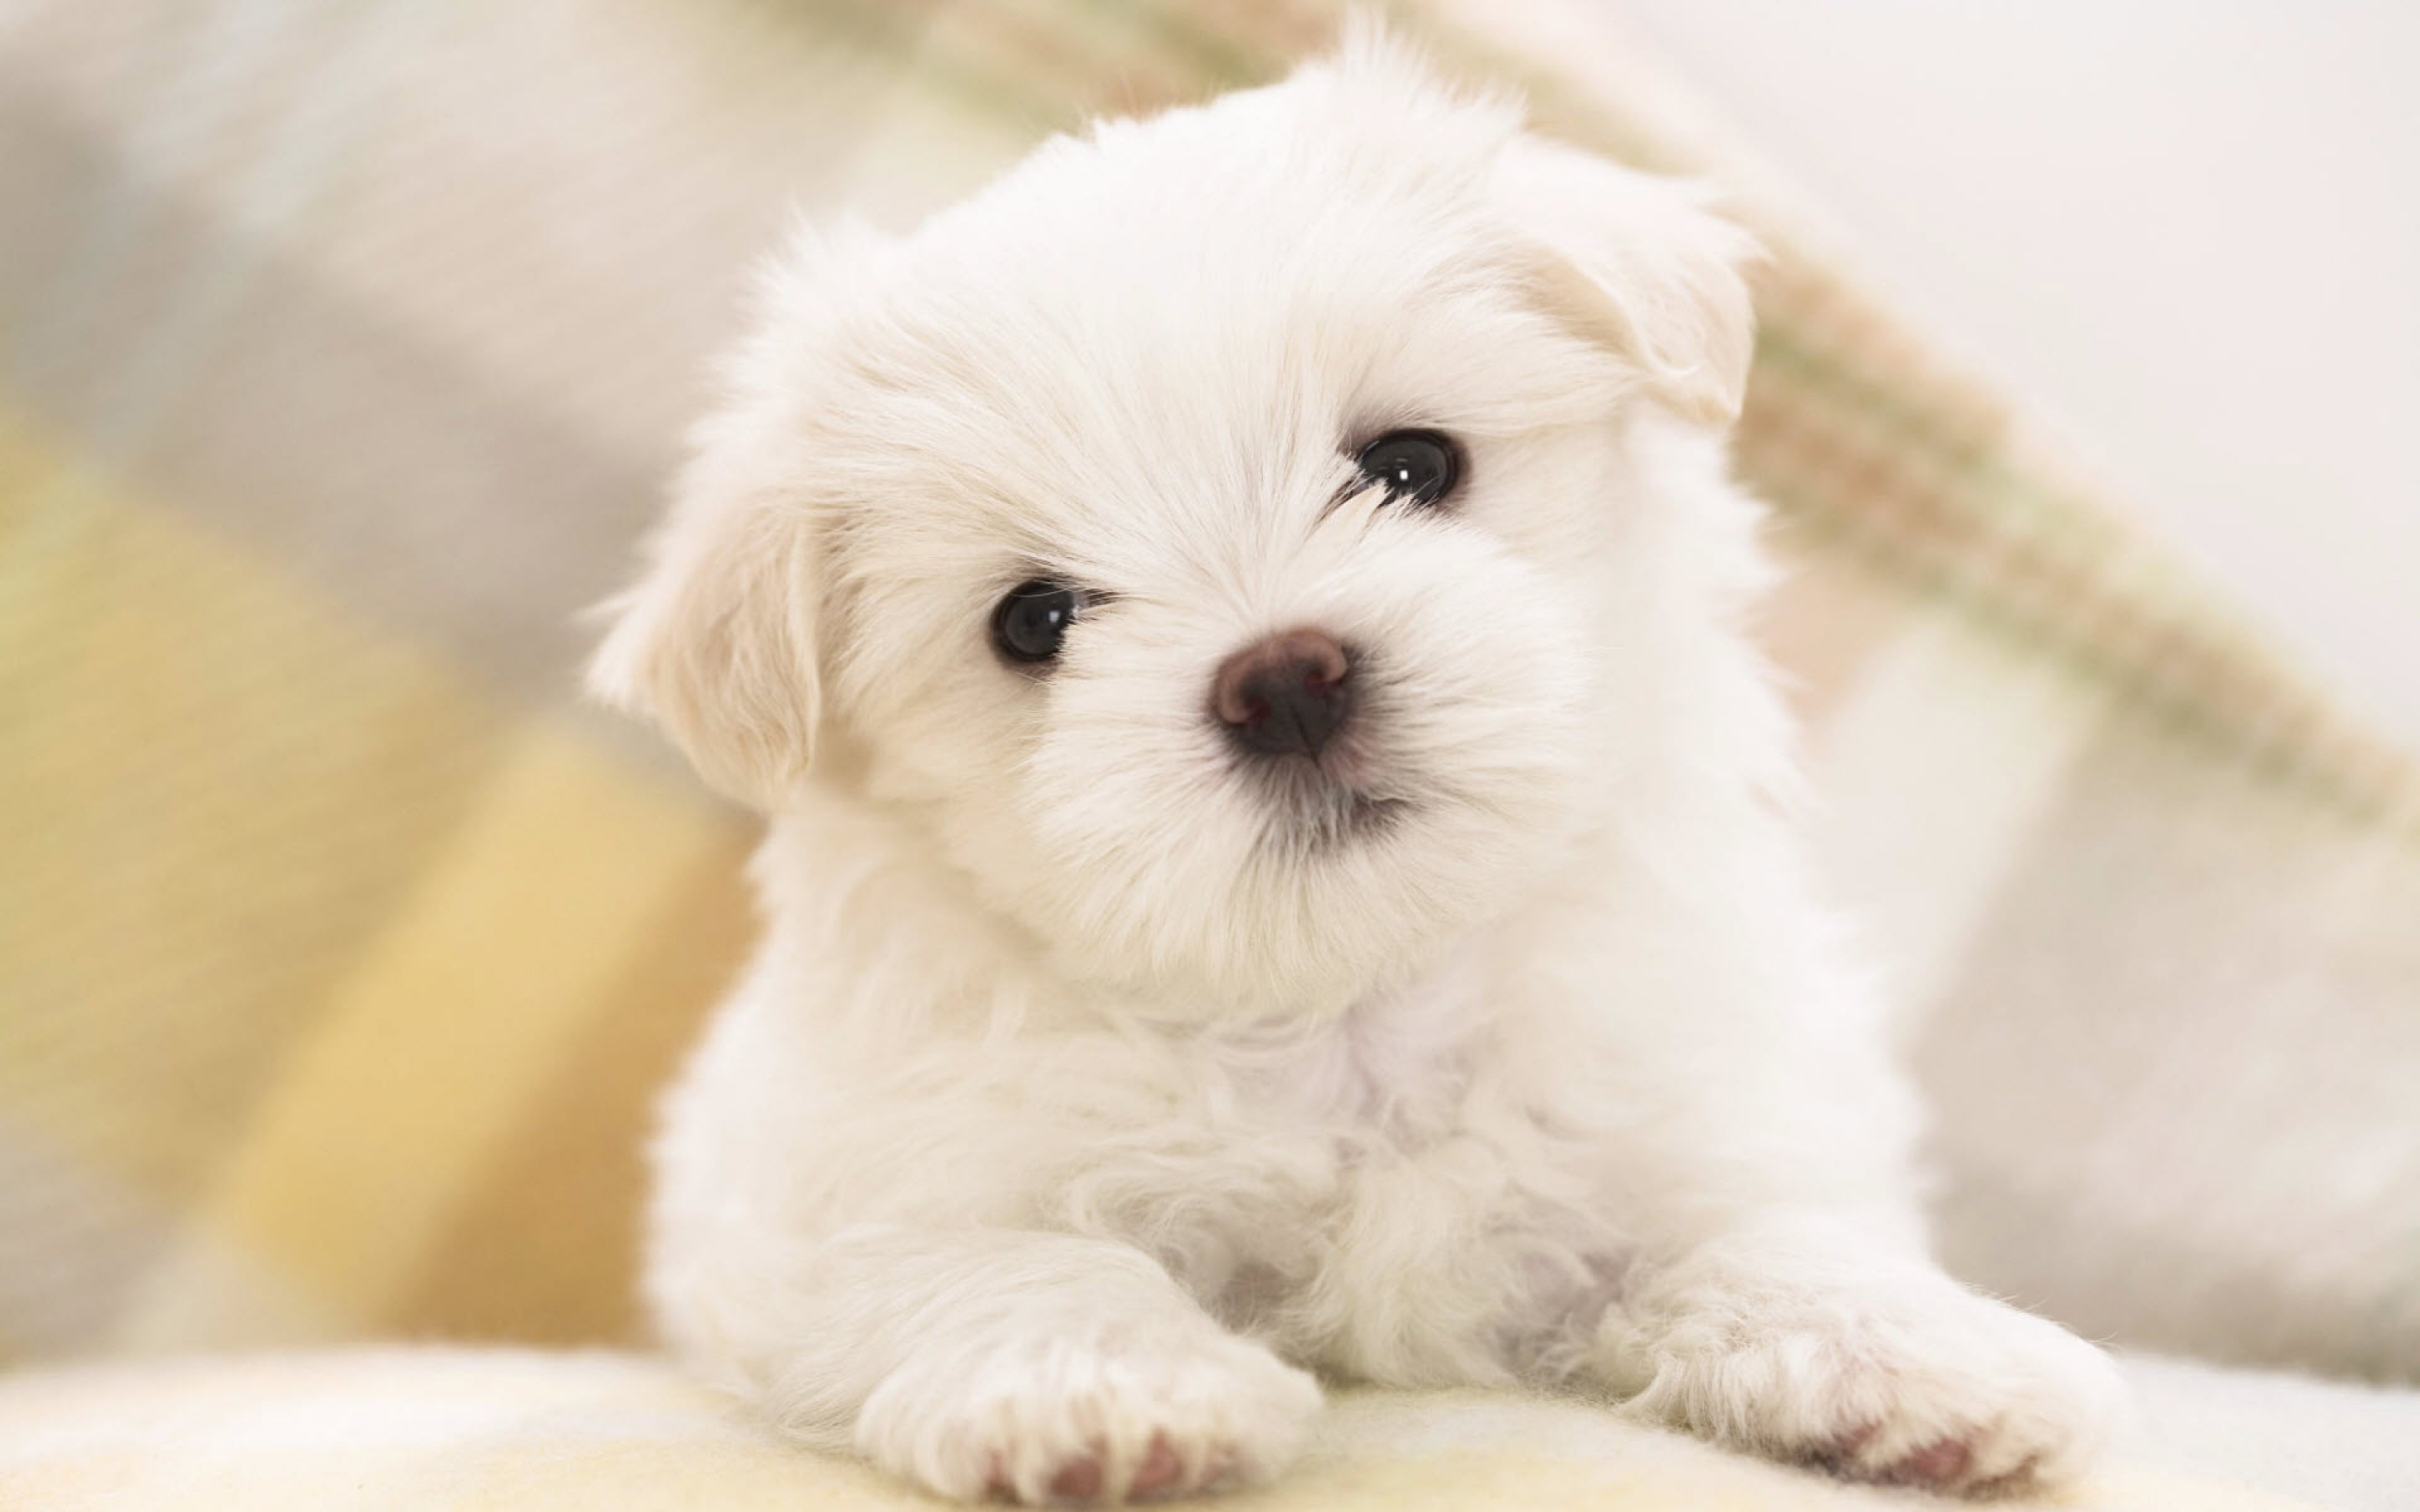 Beautiful Puppy Wallpaper